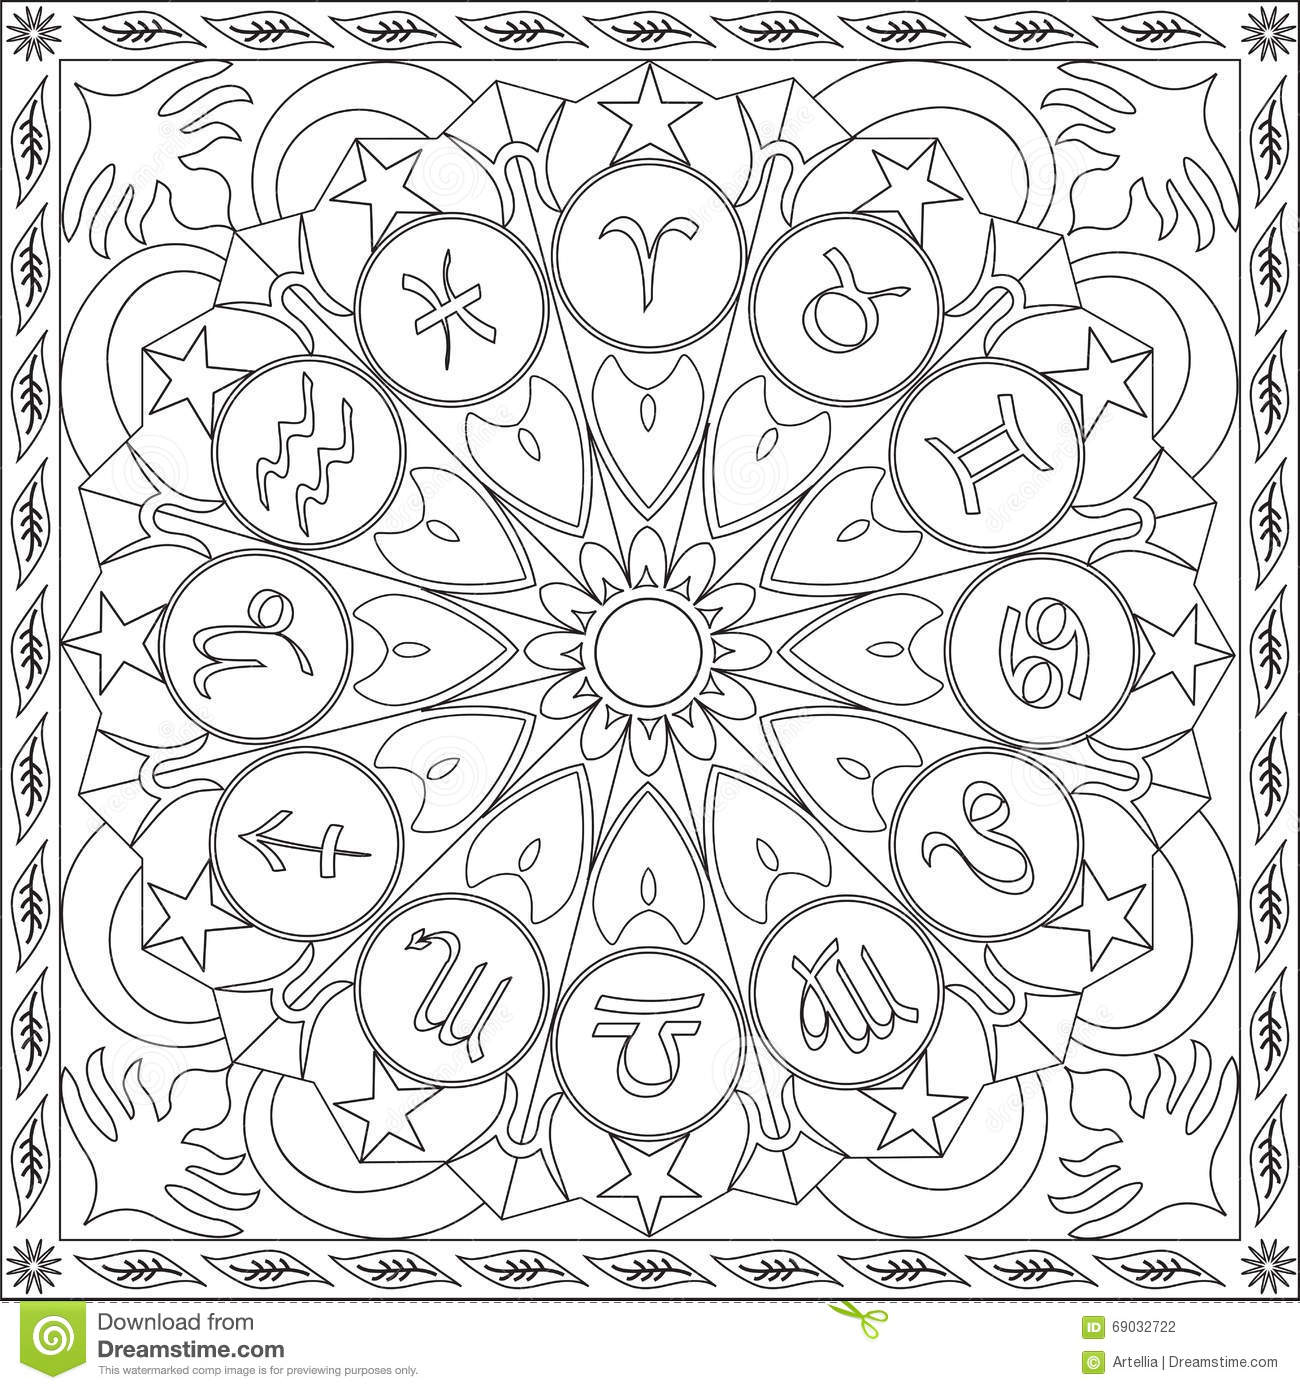 Coloring Page Book For Adults Square Format Zodiac Signs Wheel